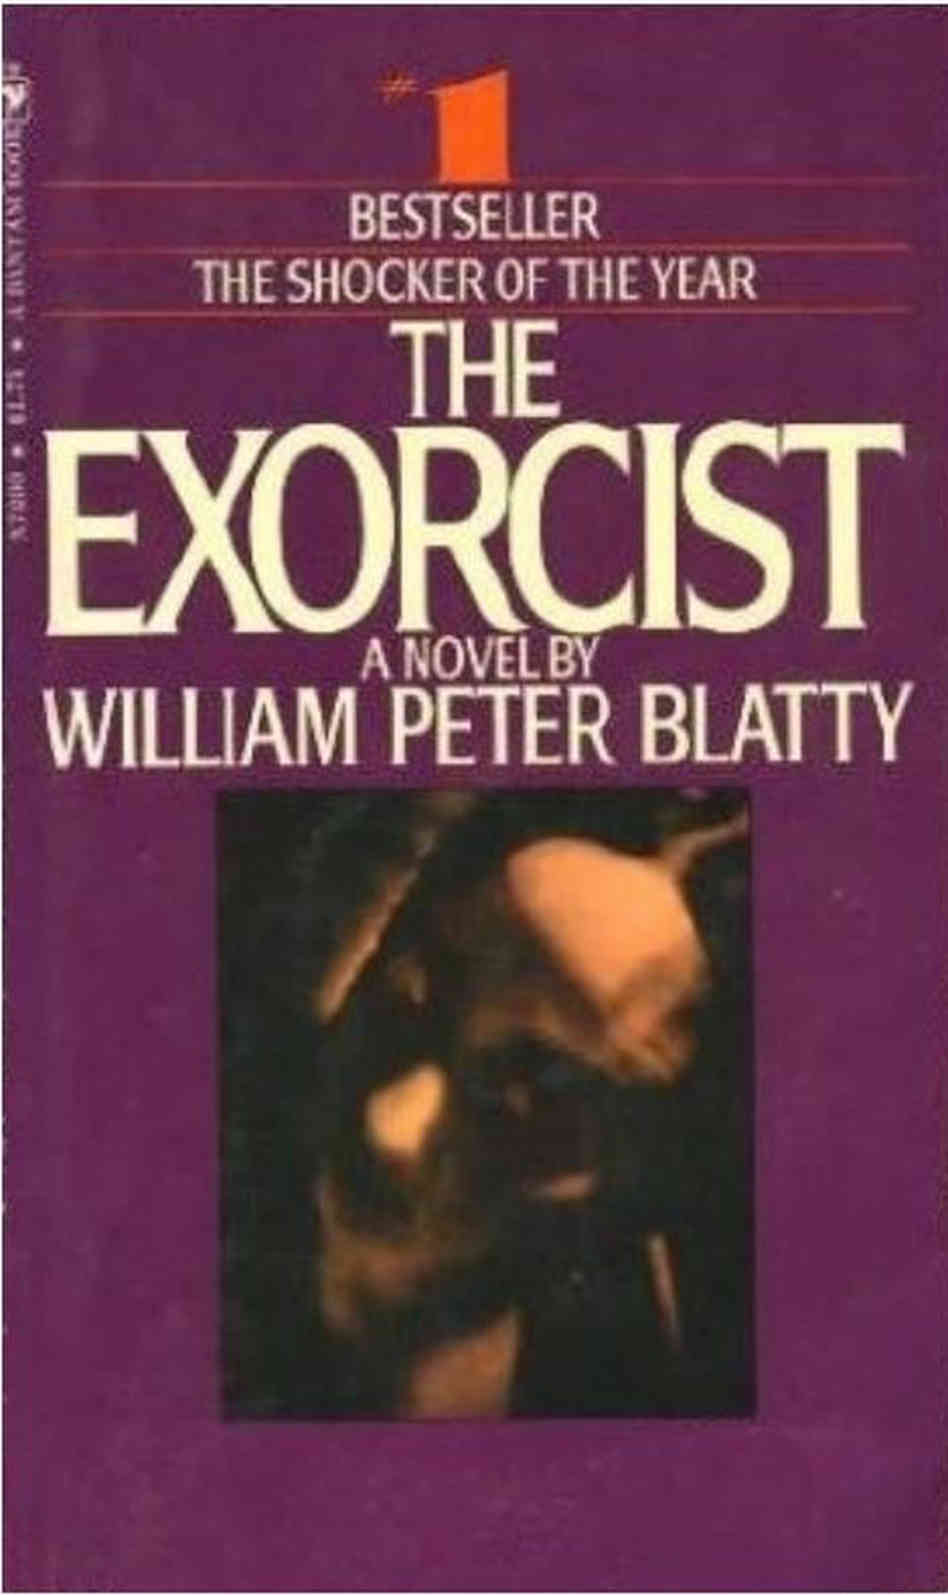 Book ReviewThe Exorcist By William Peter Blatty JN